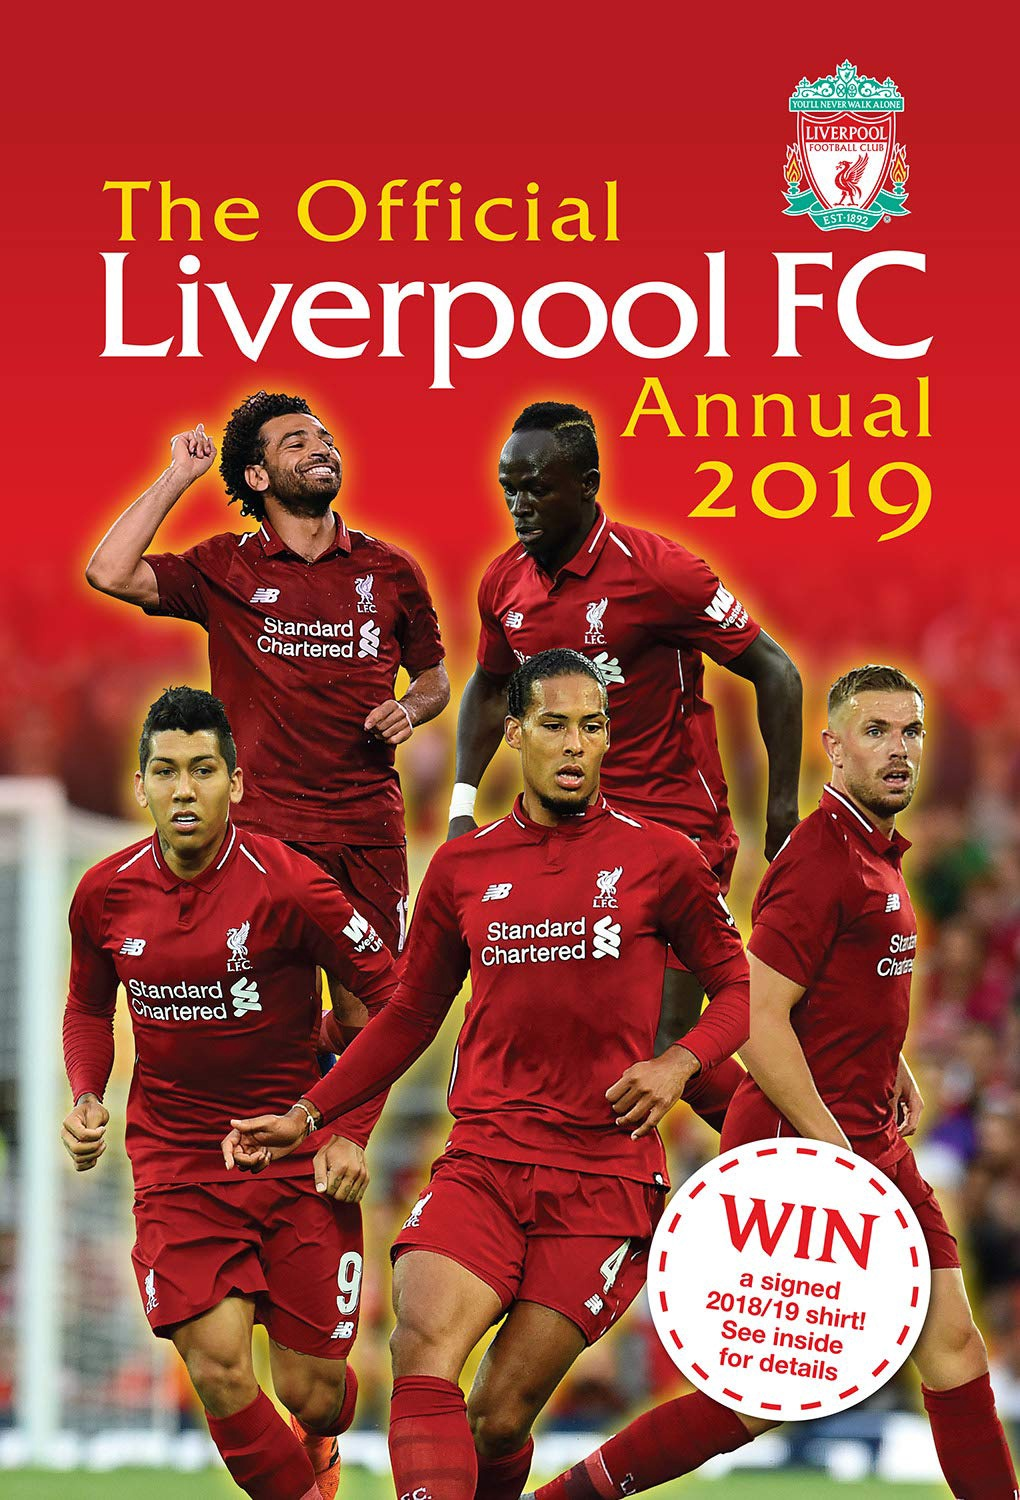 OFFICIAL LIVERPOOL FC ANNUAL 2019 (HB)